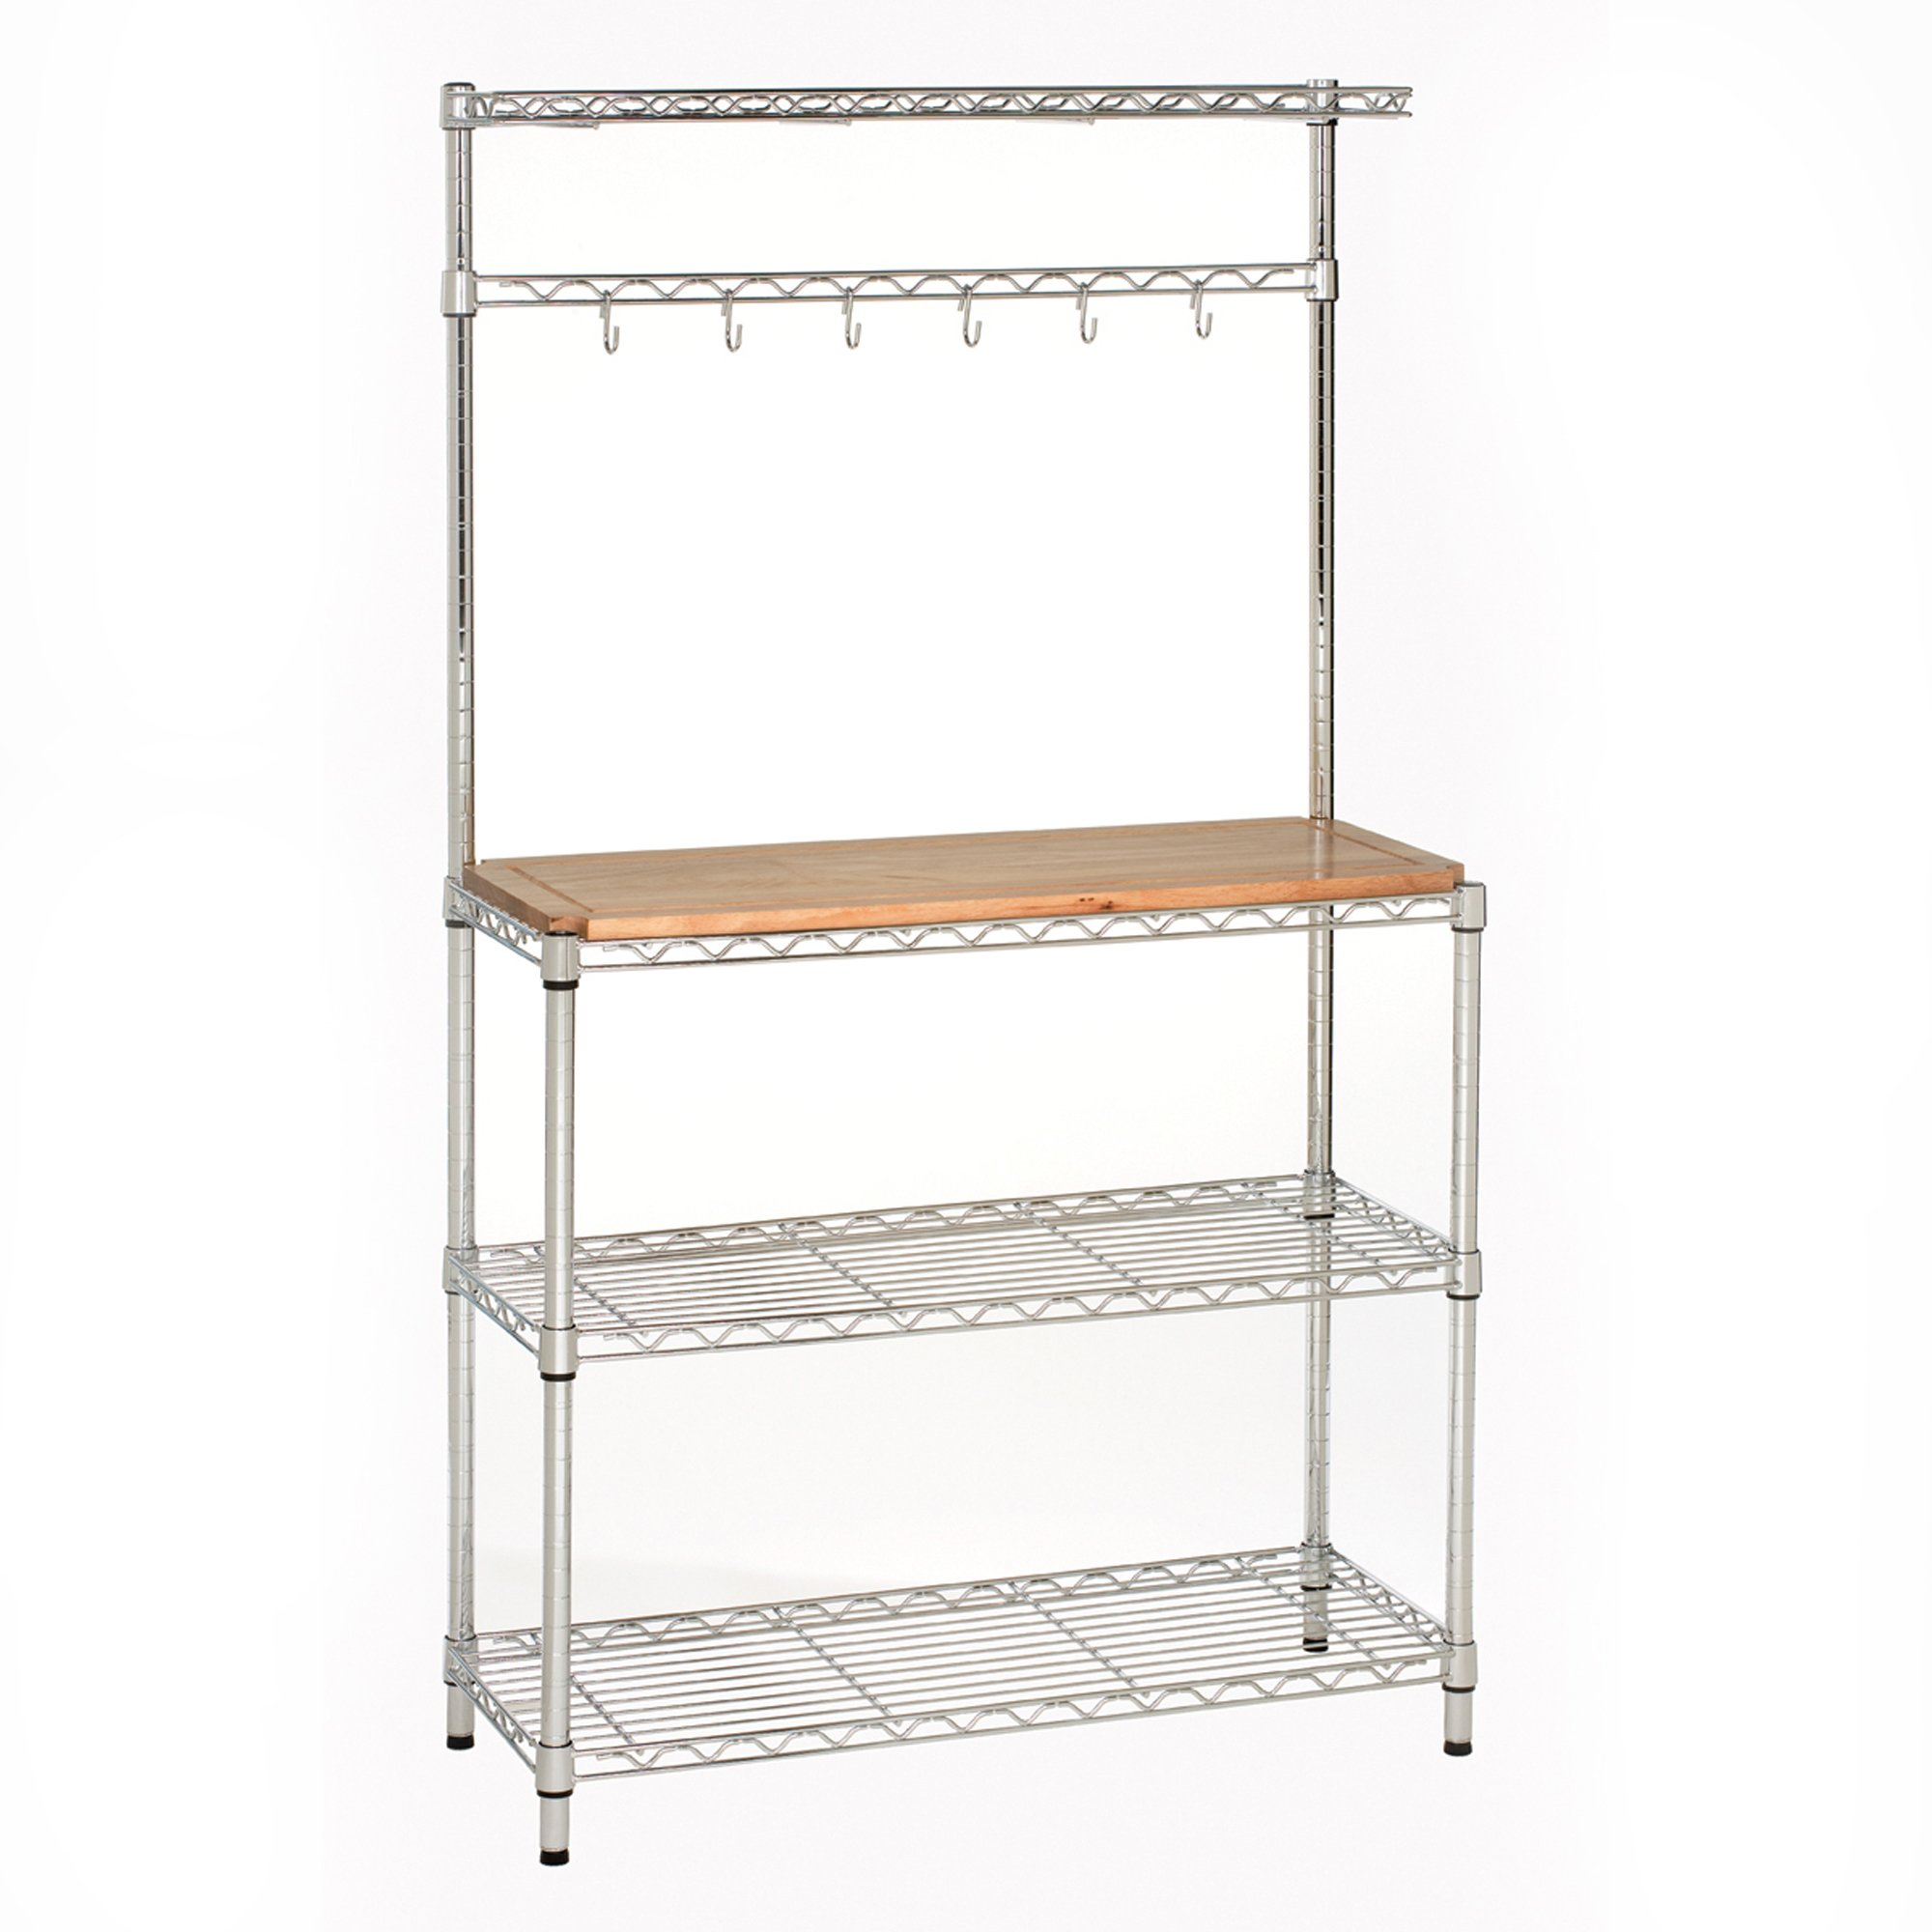 Seville Classics Baker's Rack for Kitchens, Solid Wood Top, 14'' x 36'' x 63'' H by Seville Classics (Image #1)